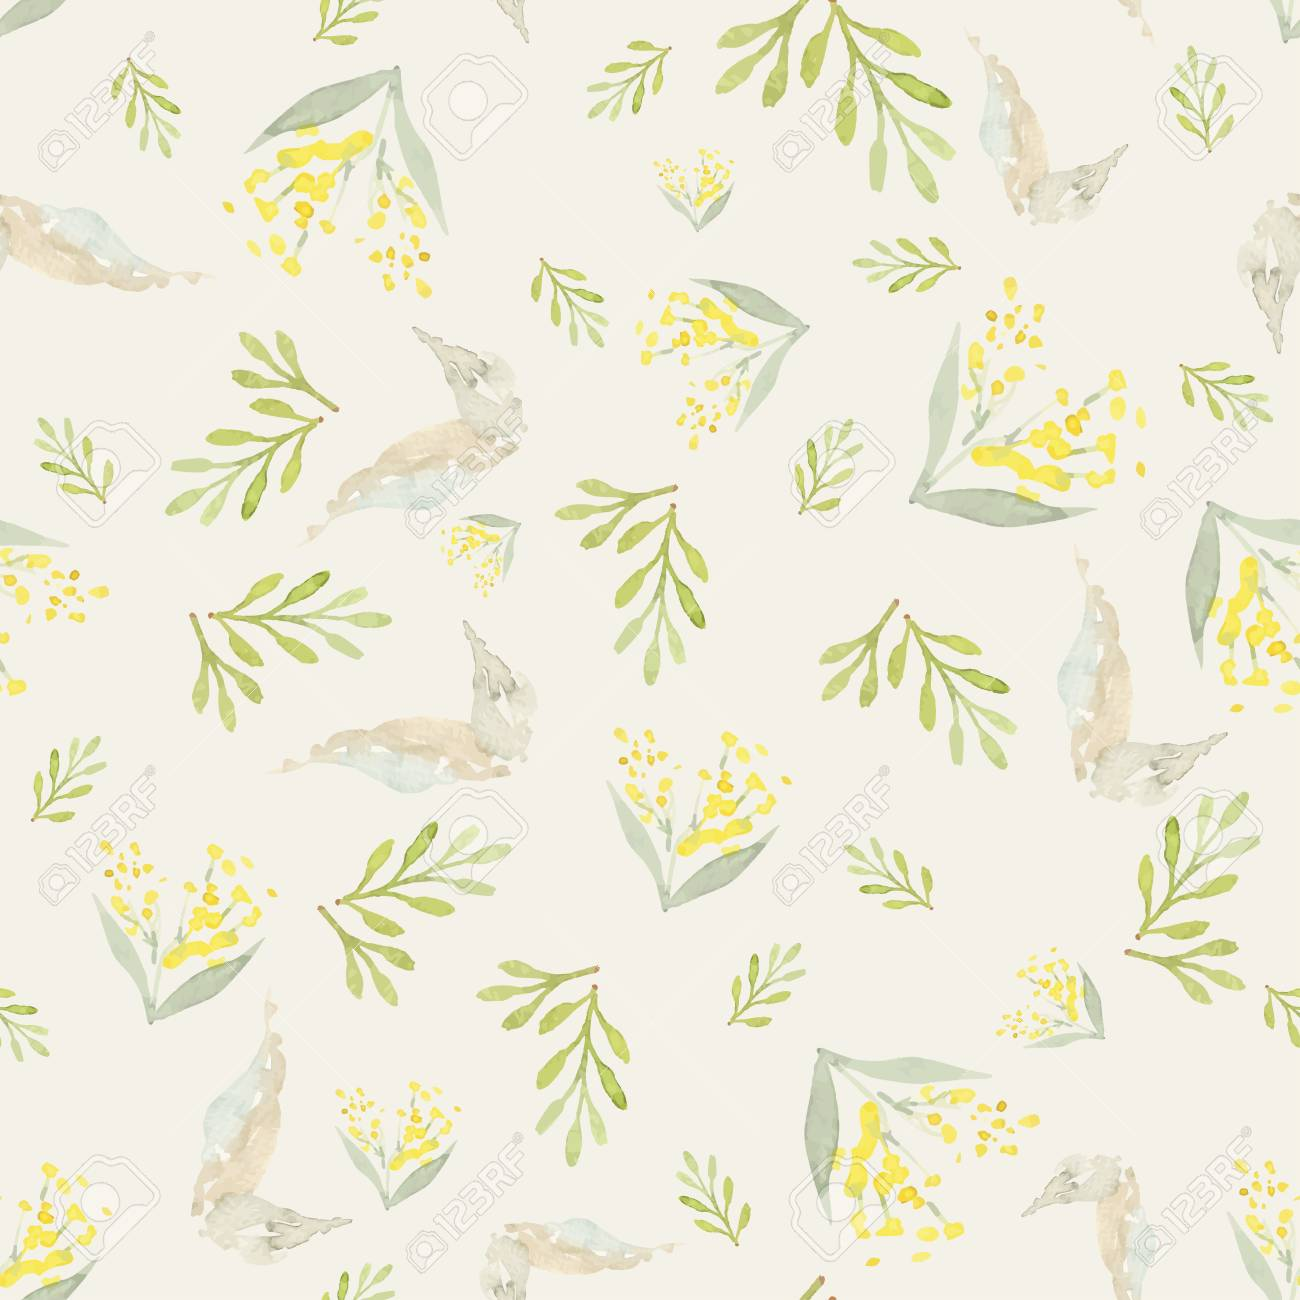 watercolor flowers seamless pattern suitable for packaging and